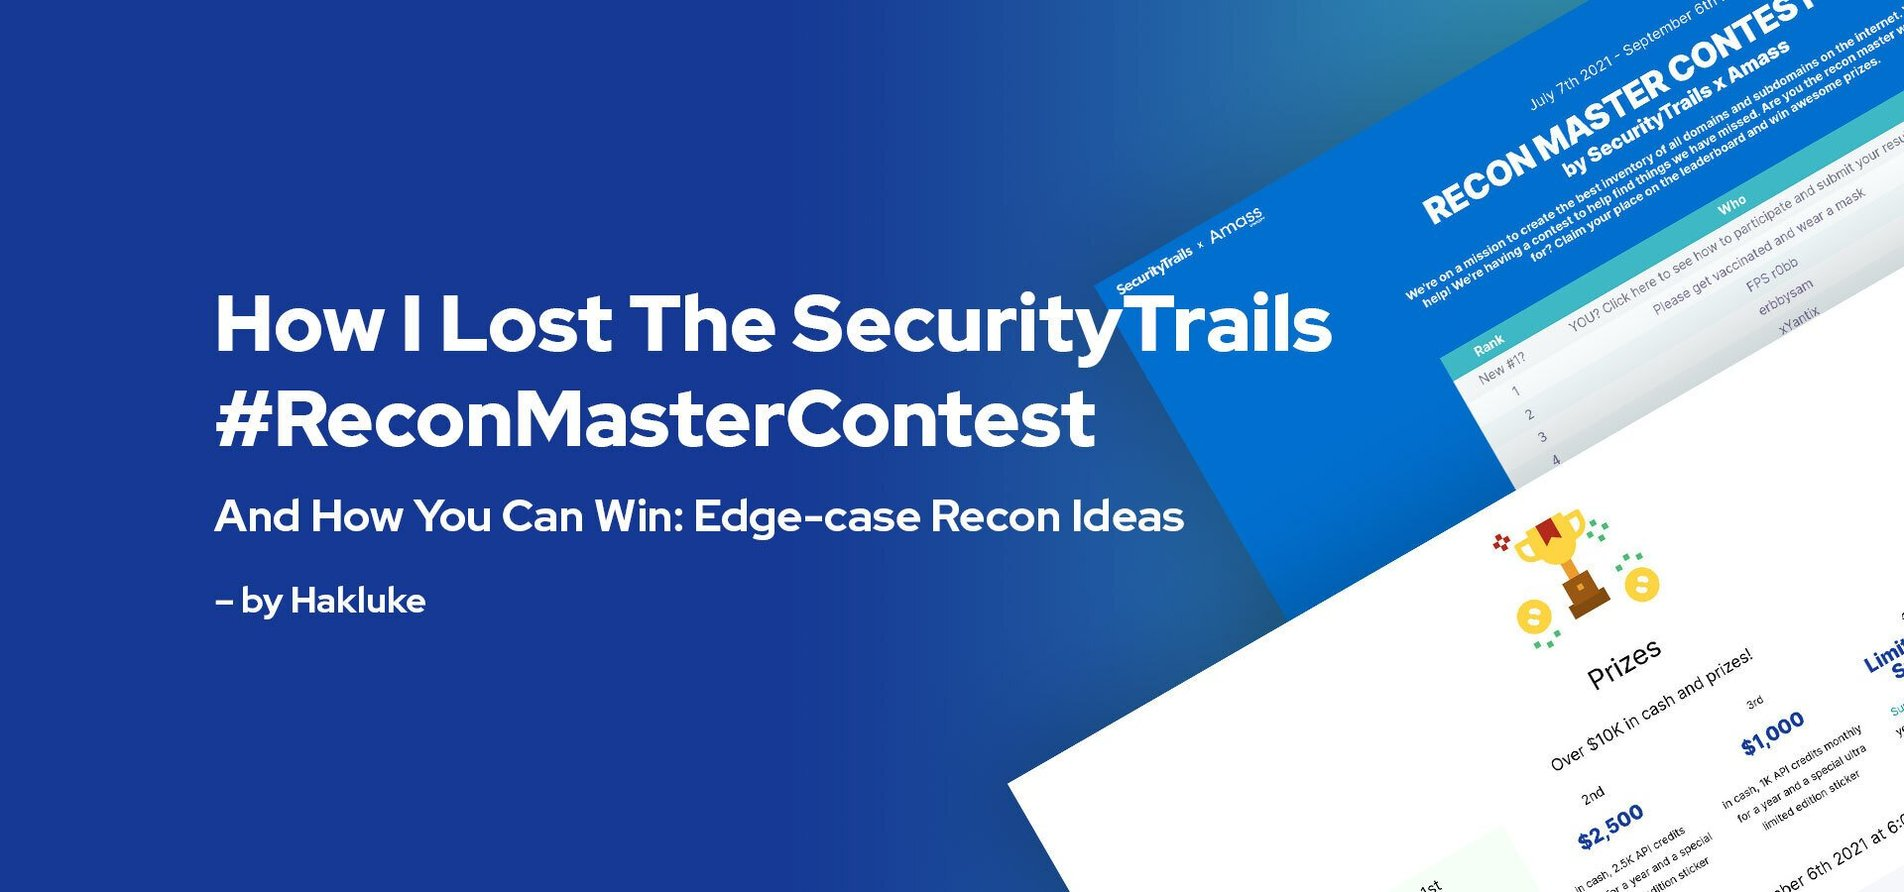 How I Lost the SecurityTrails #ReconMaster Contest, and How You Can Win: Edge-Case Recon Ideas.